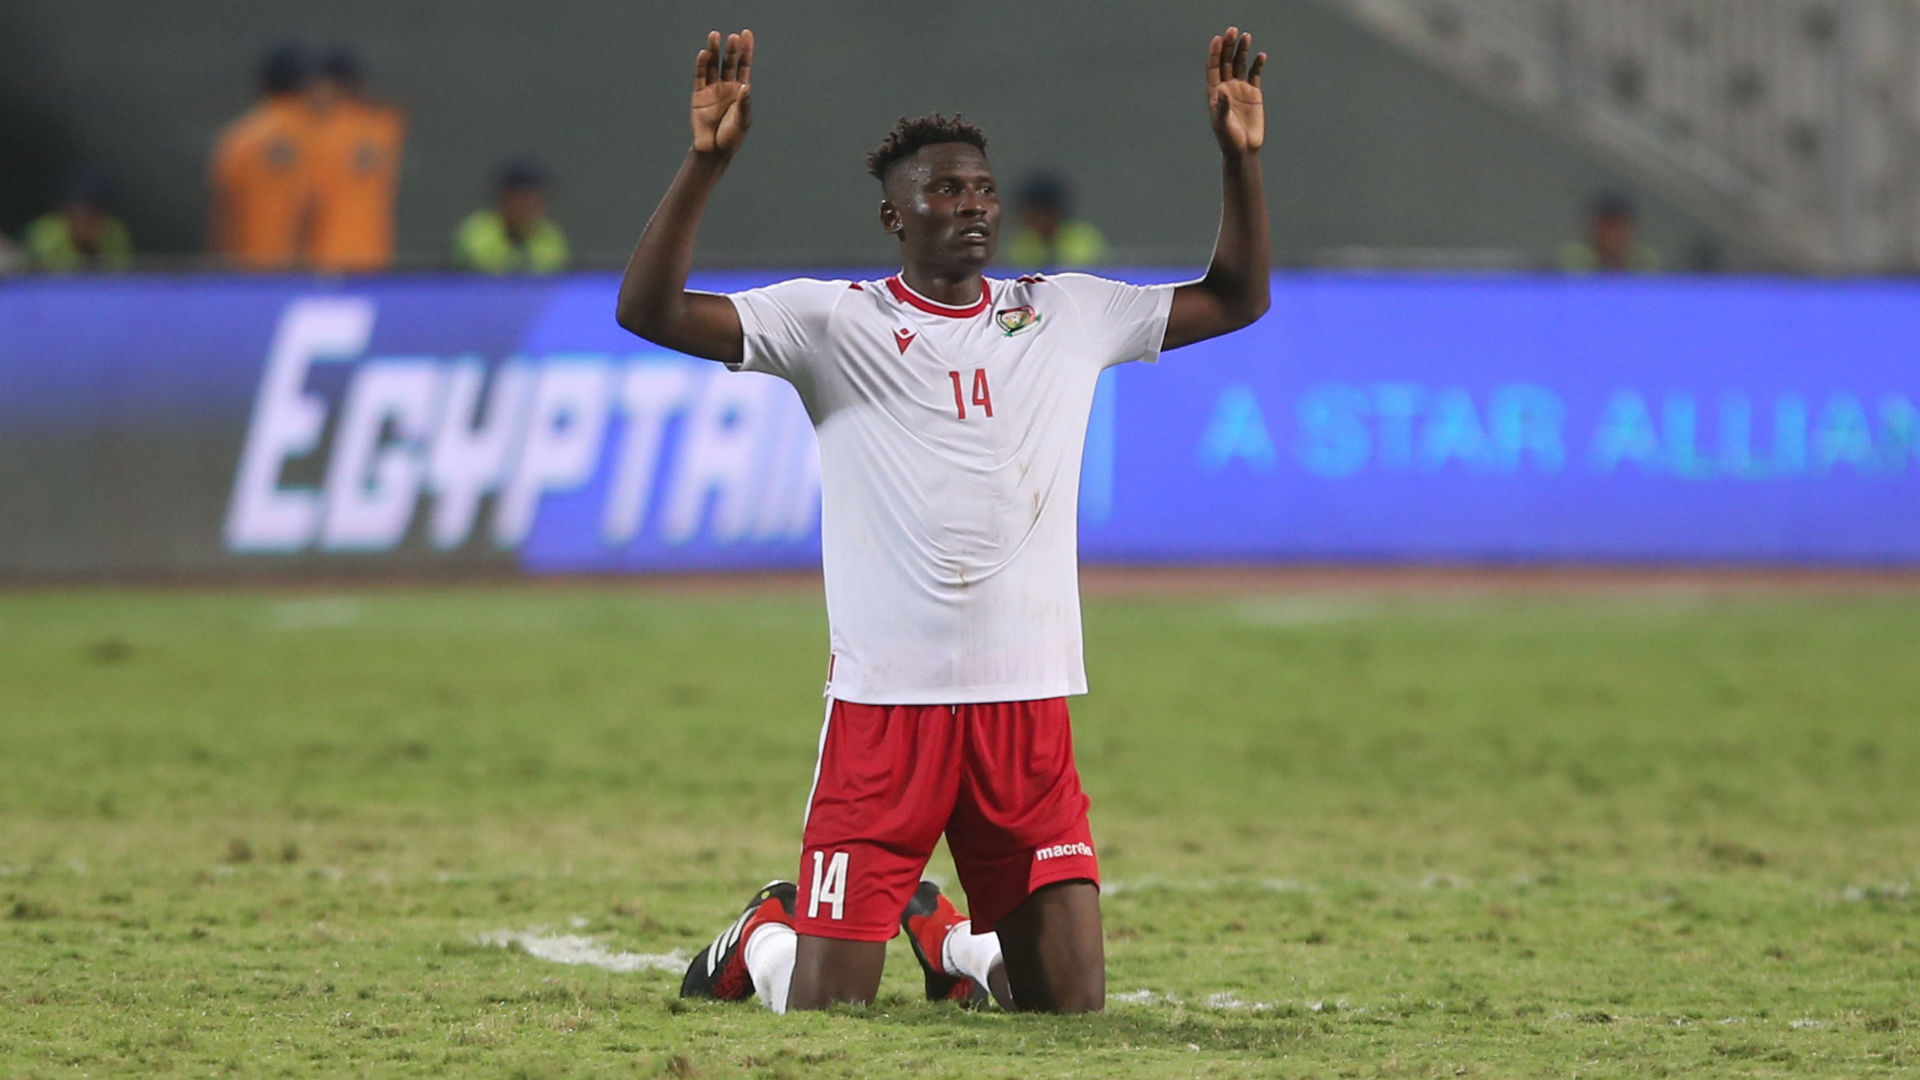 Afcon 2021 Qualifiers: Harambee Stars need government support, Olunga pleads